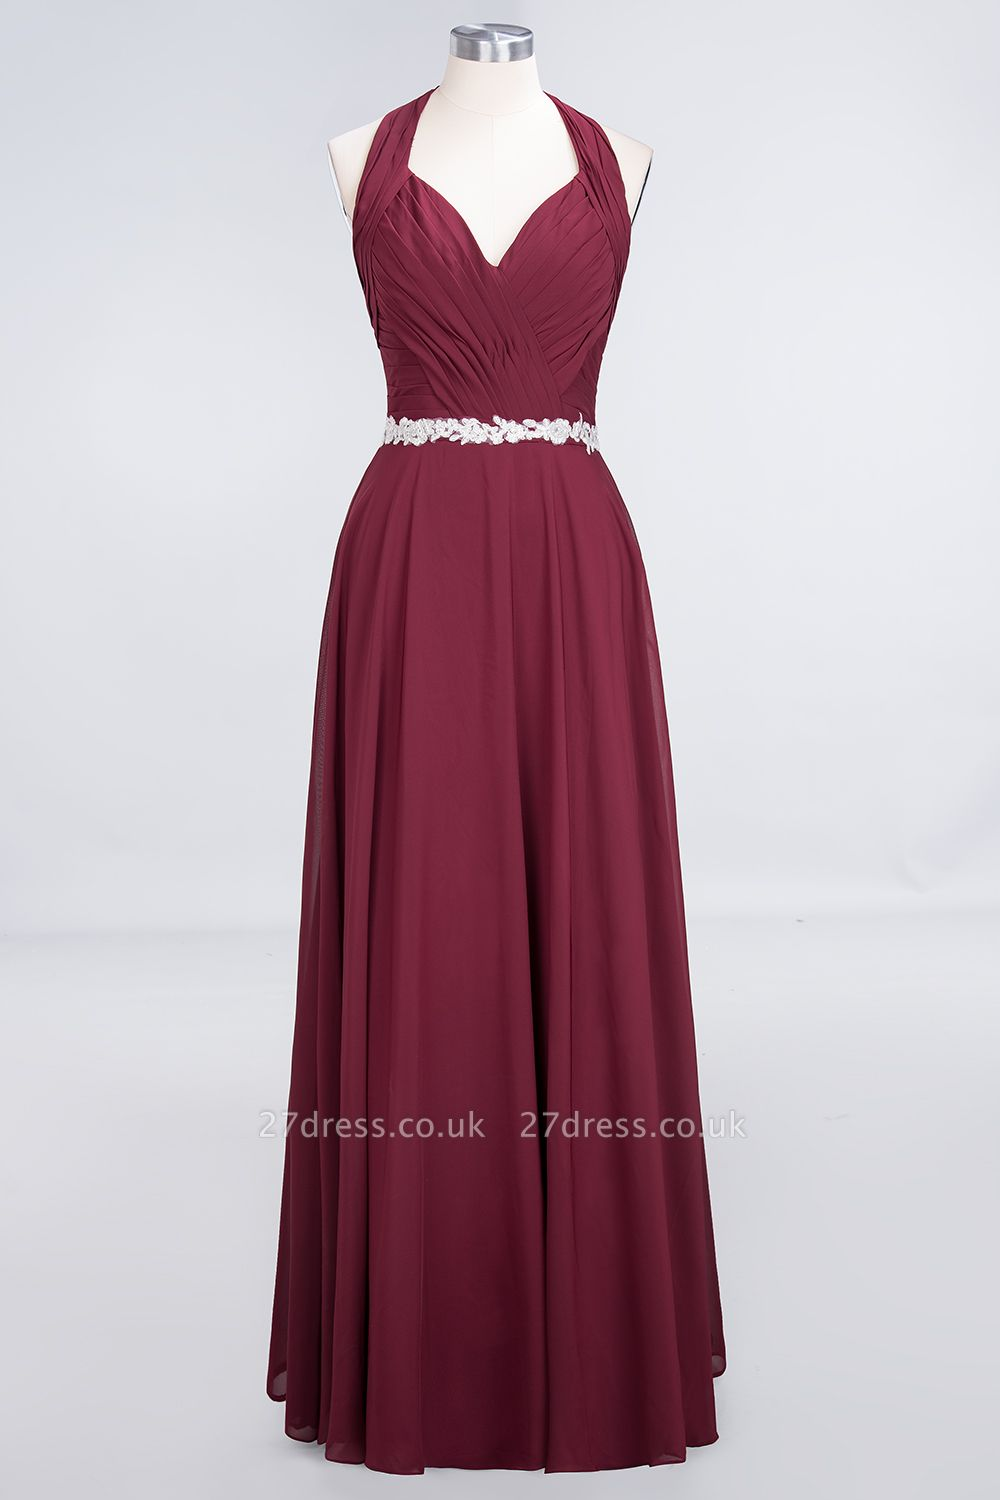 A-Line Chiffon Halter V-Neck Sleeveless Ruffle Long Bridesmaid Dress UK with Appliques Sashes